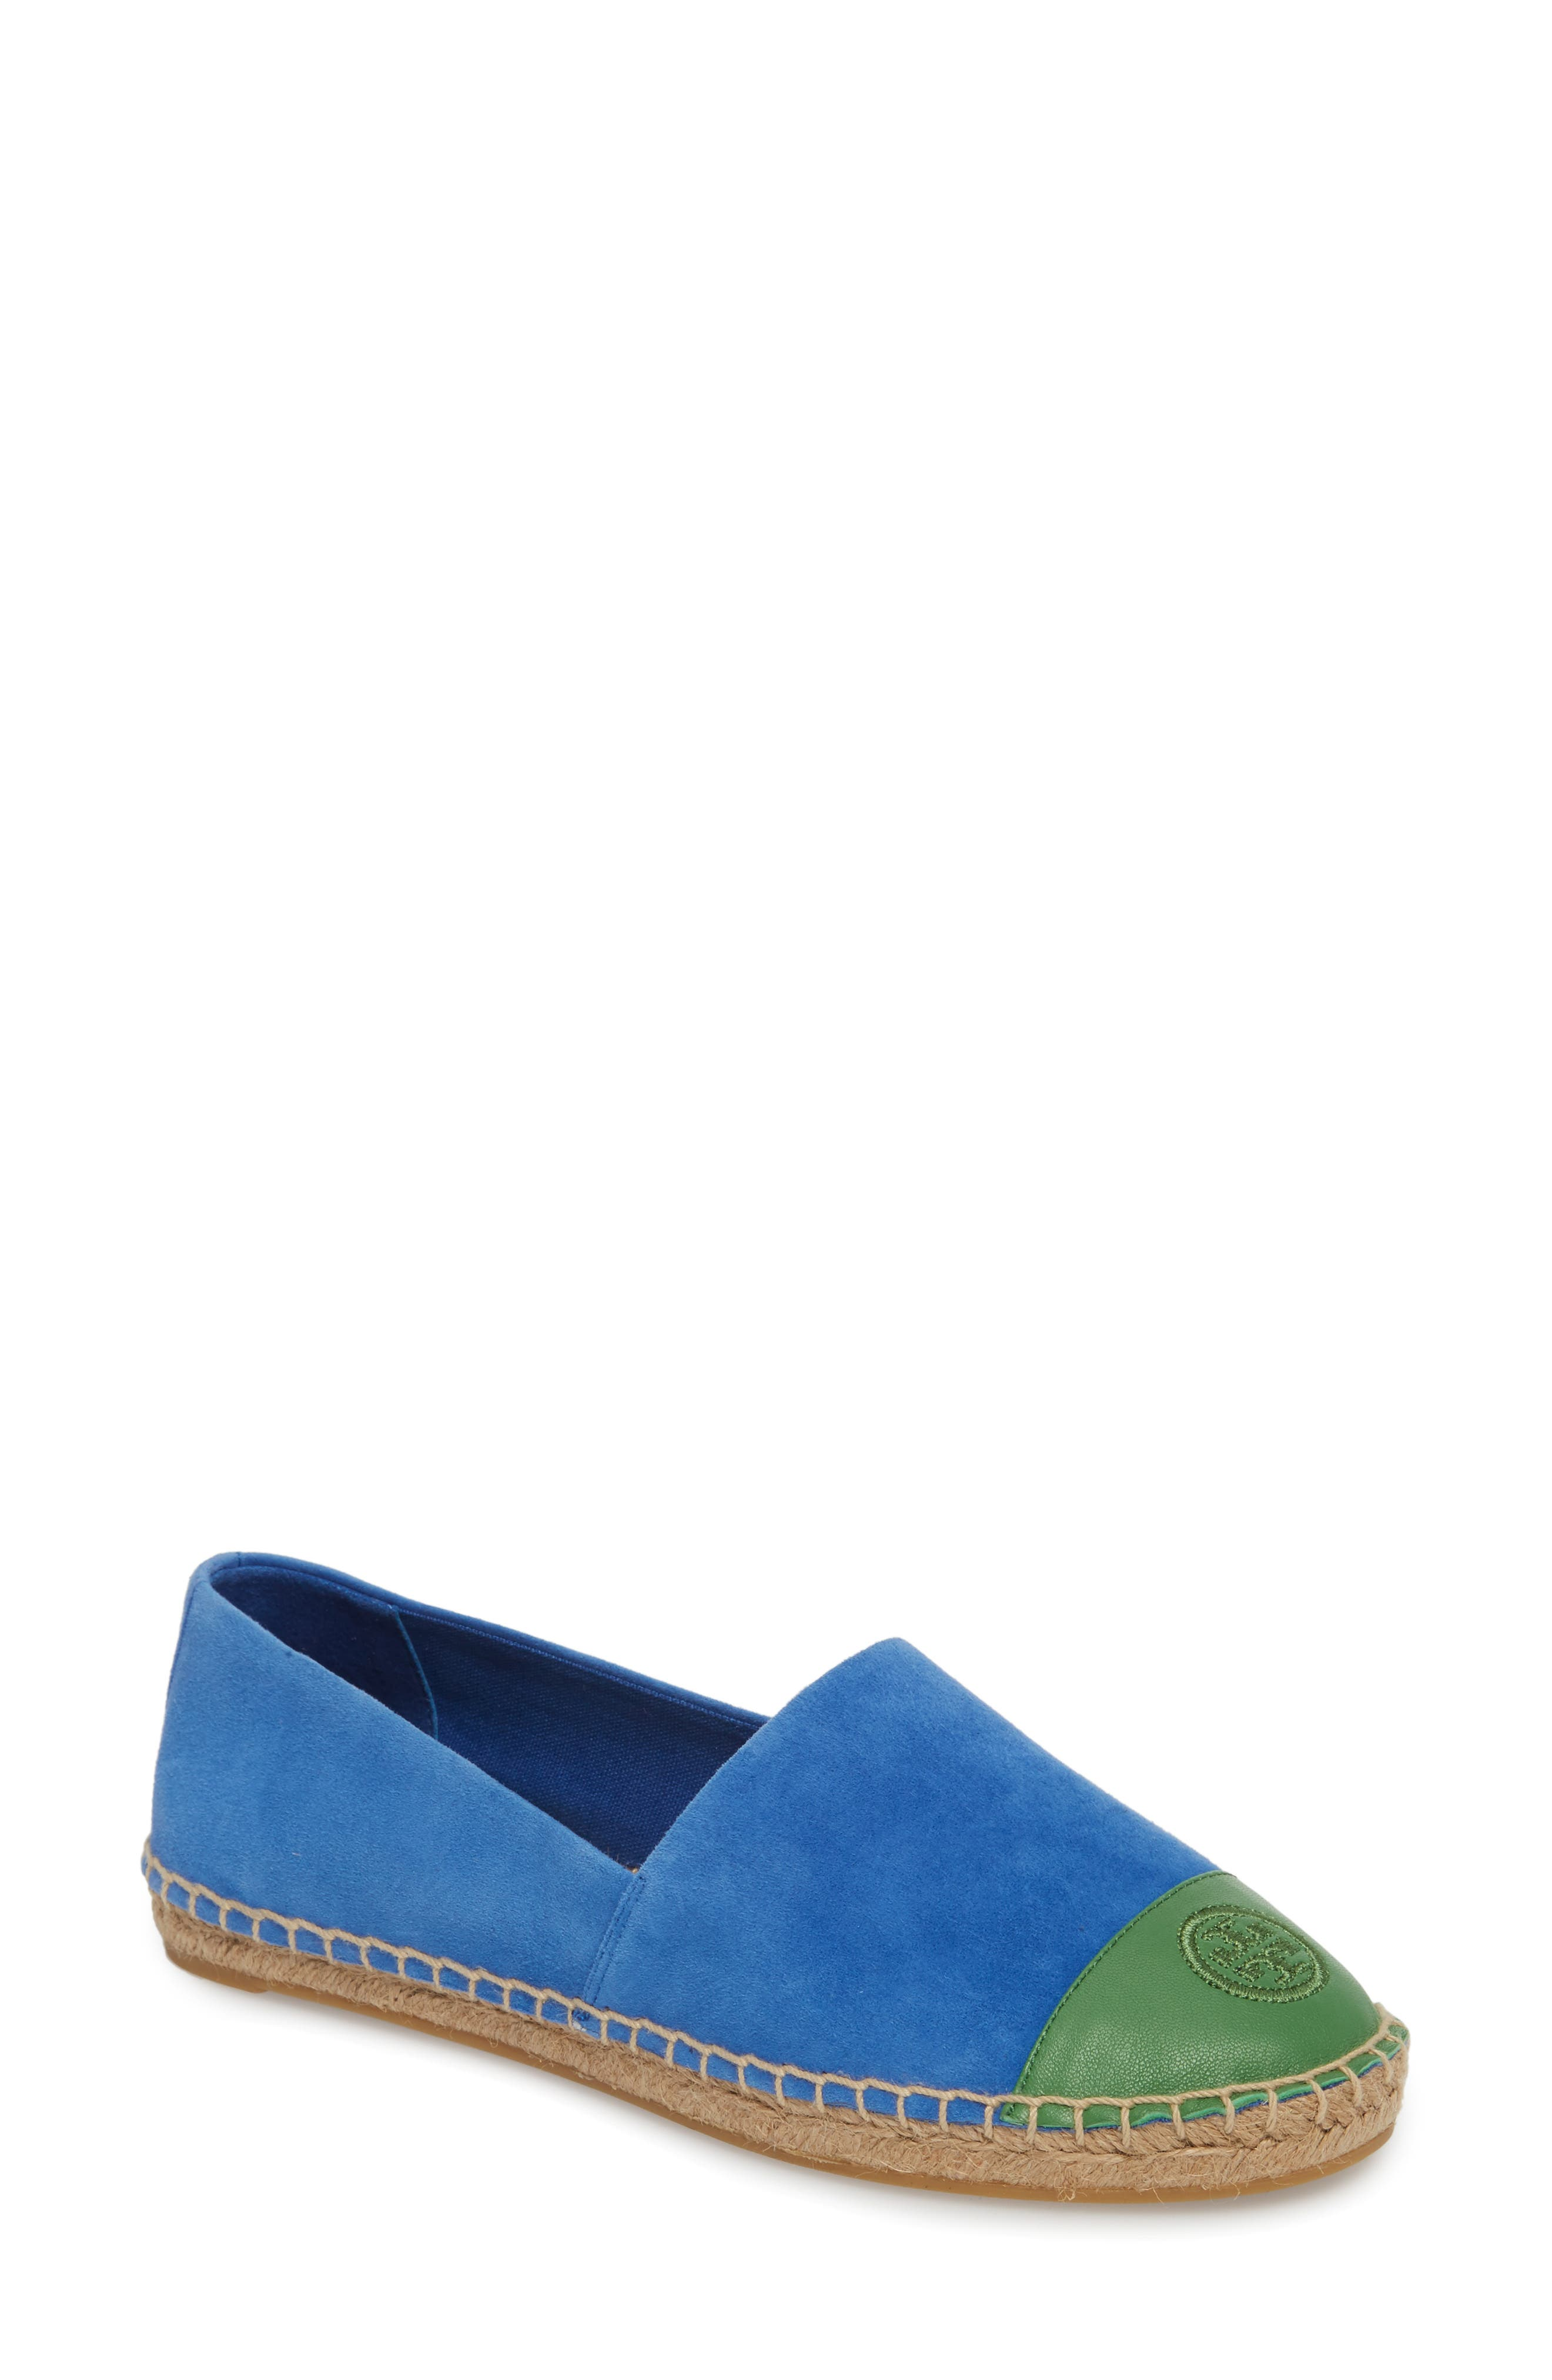 Alternate Image 1 Selected - Tory Burch Colorblock Espadrille Flat (Women)